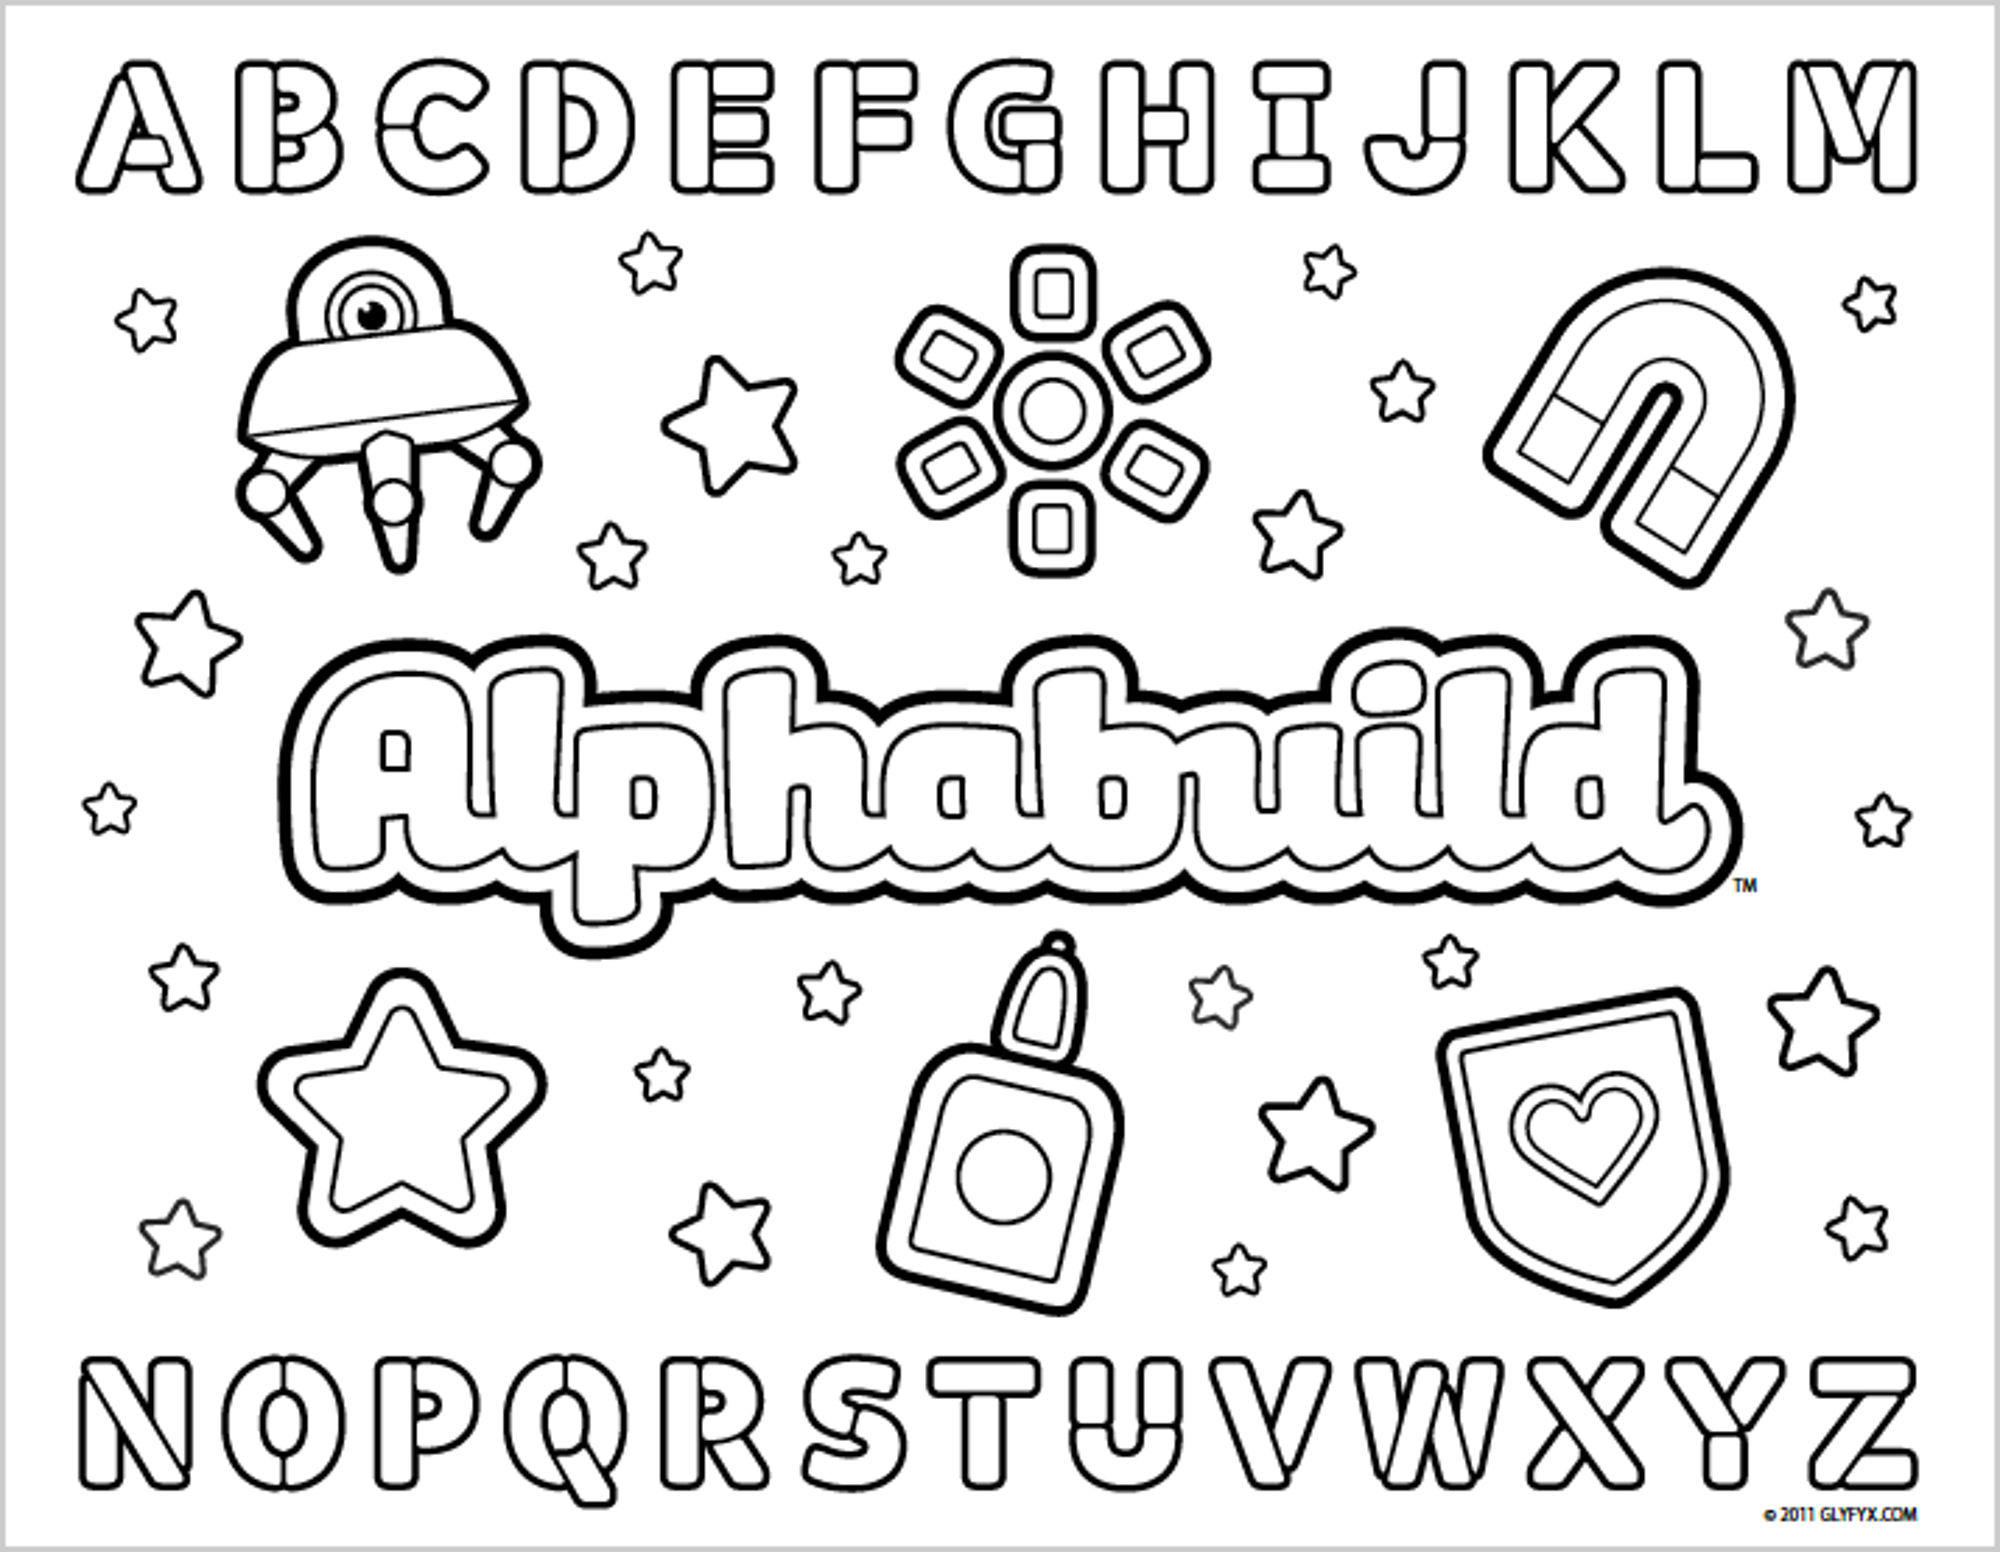 toddler abc coloring pages free printable abc coloring pages for kids coloring pages abc toddler